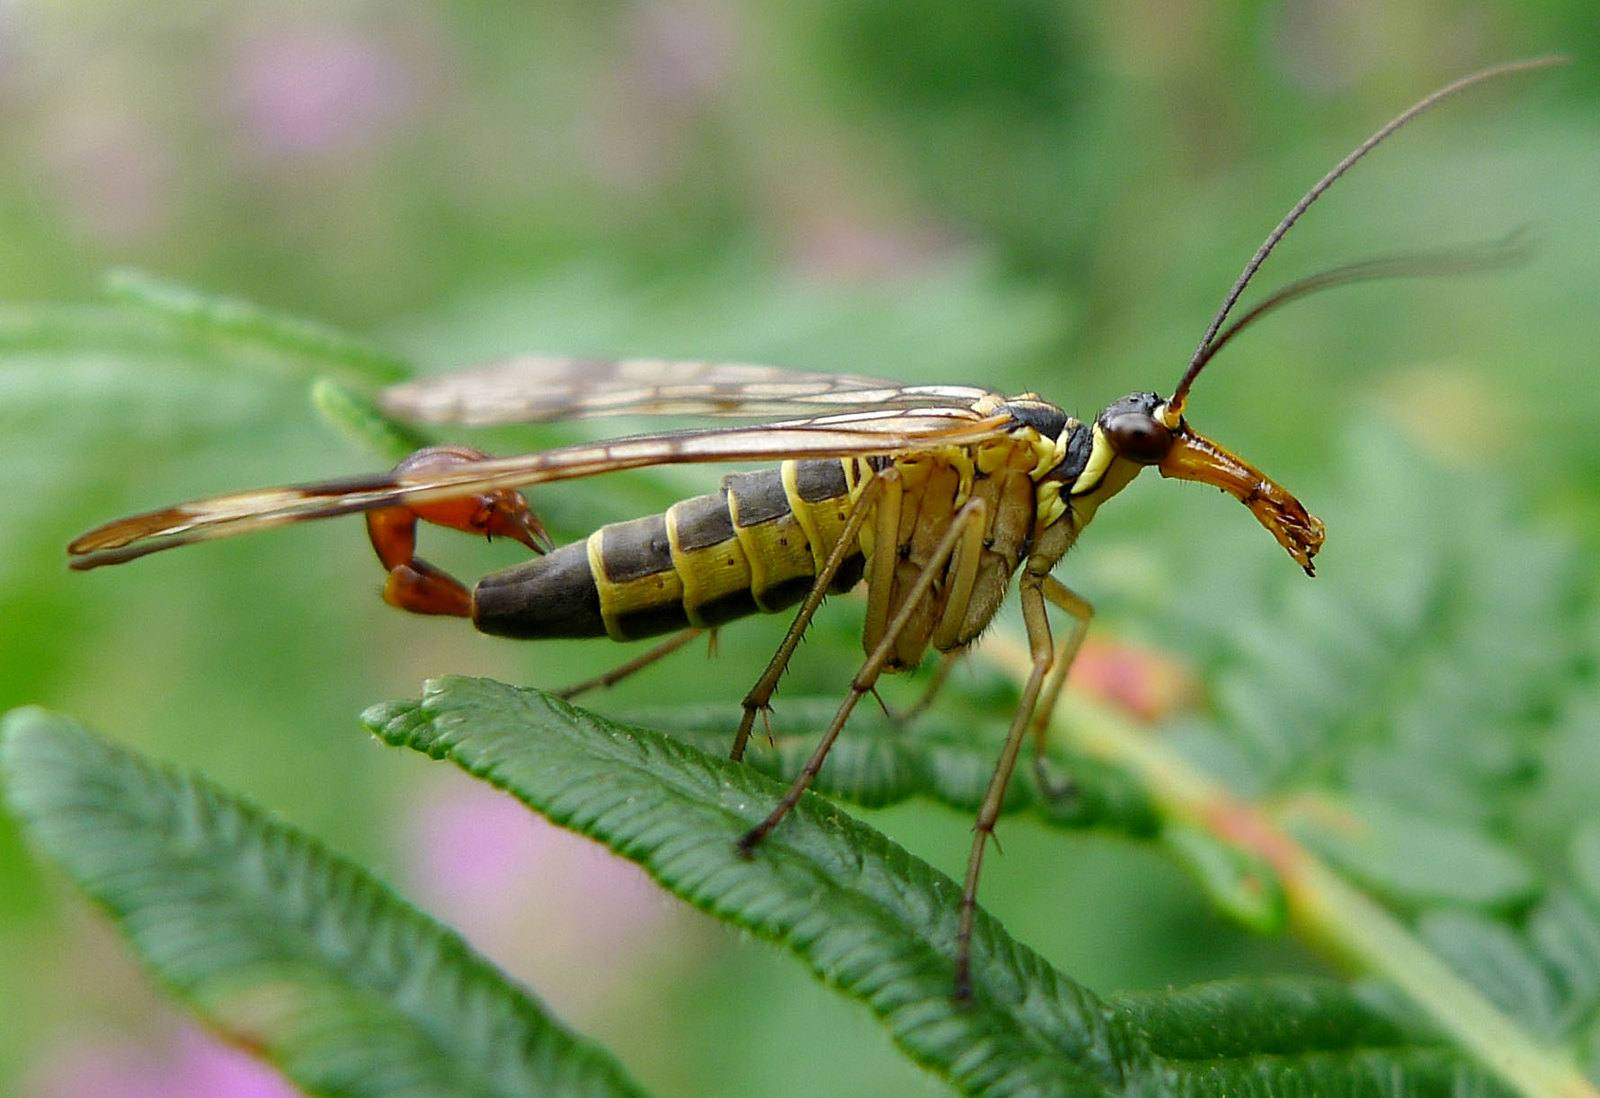 Close view of a scorpion fly sitting on a plant.